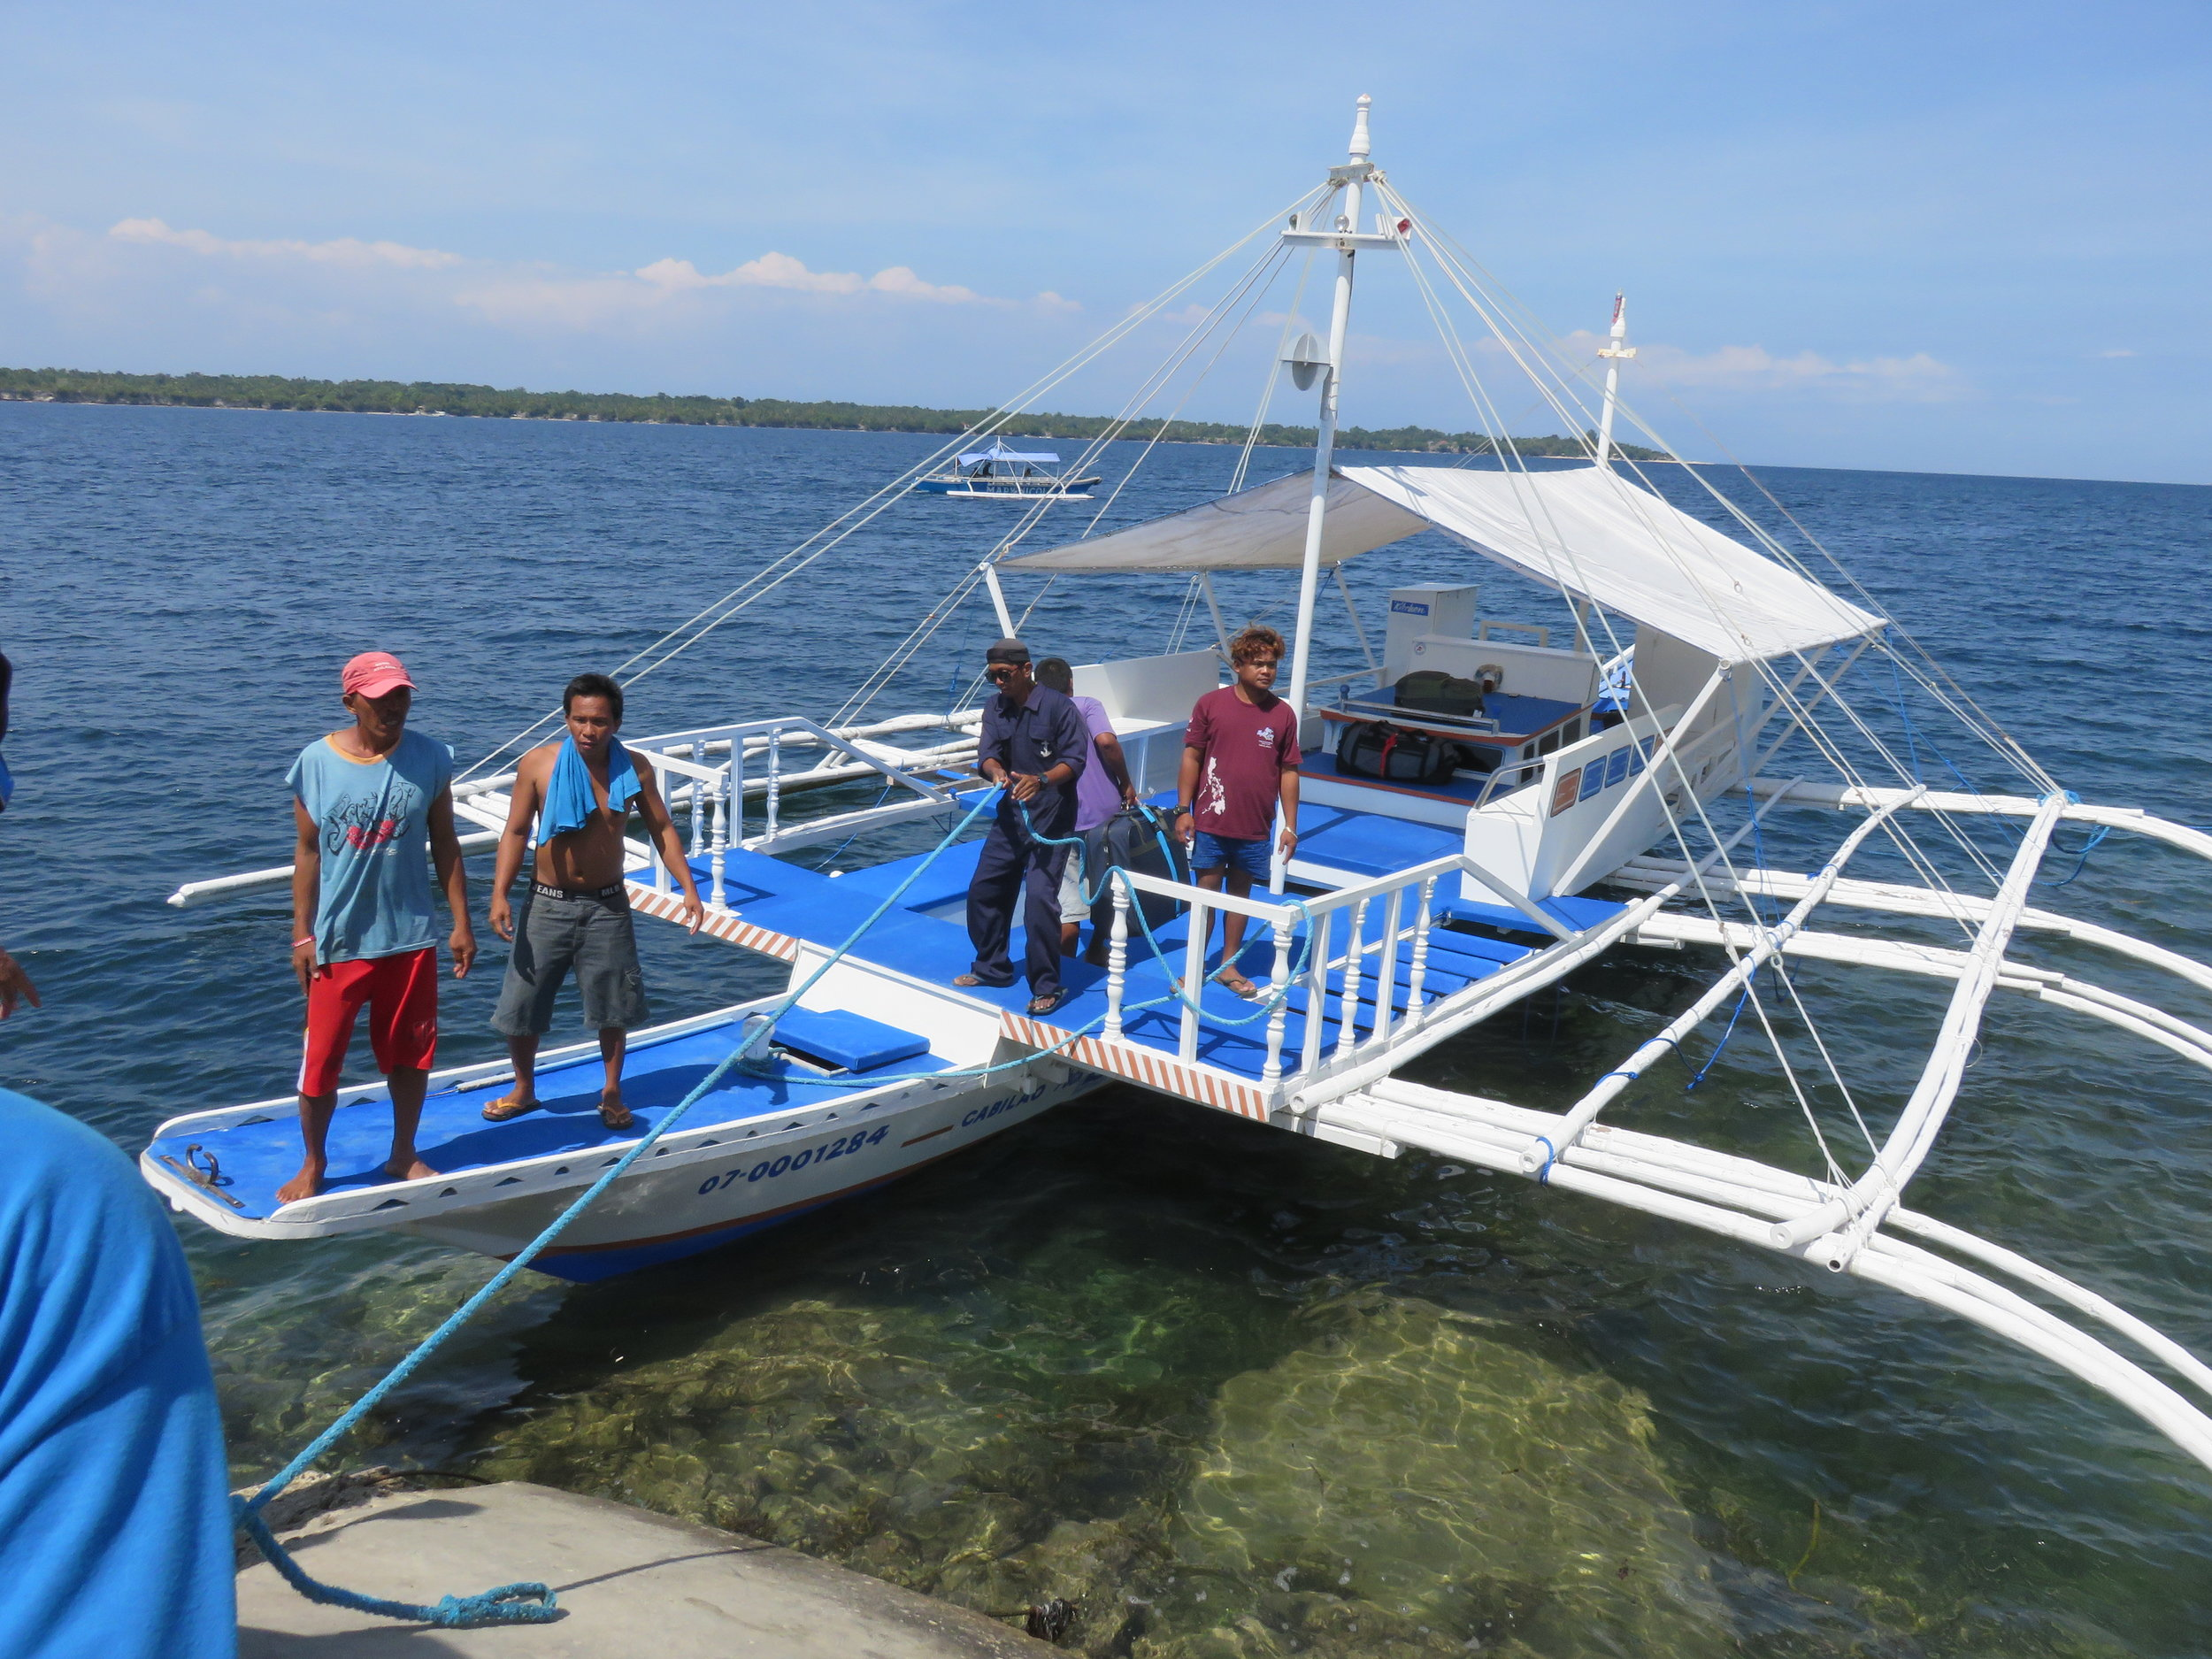 One of our dive boats in the Philippines